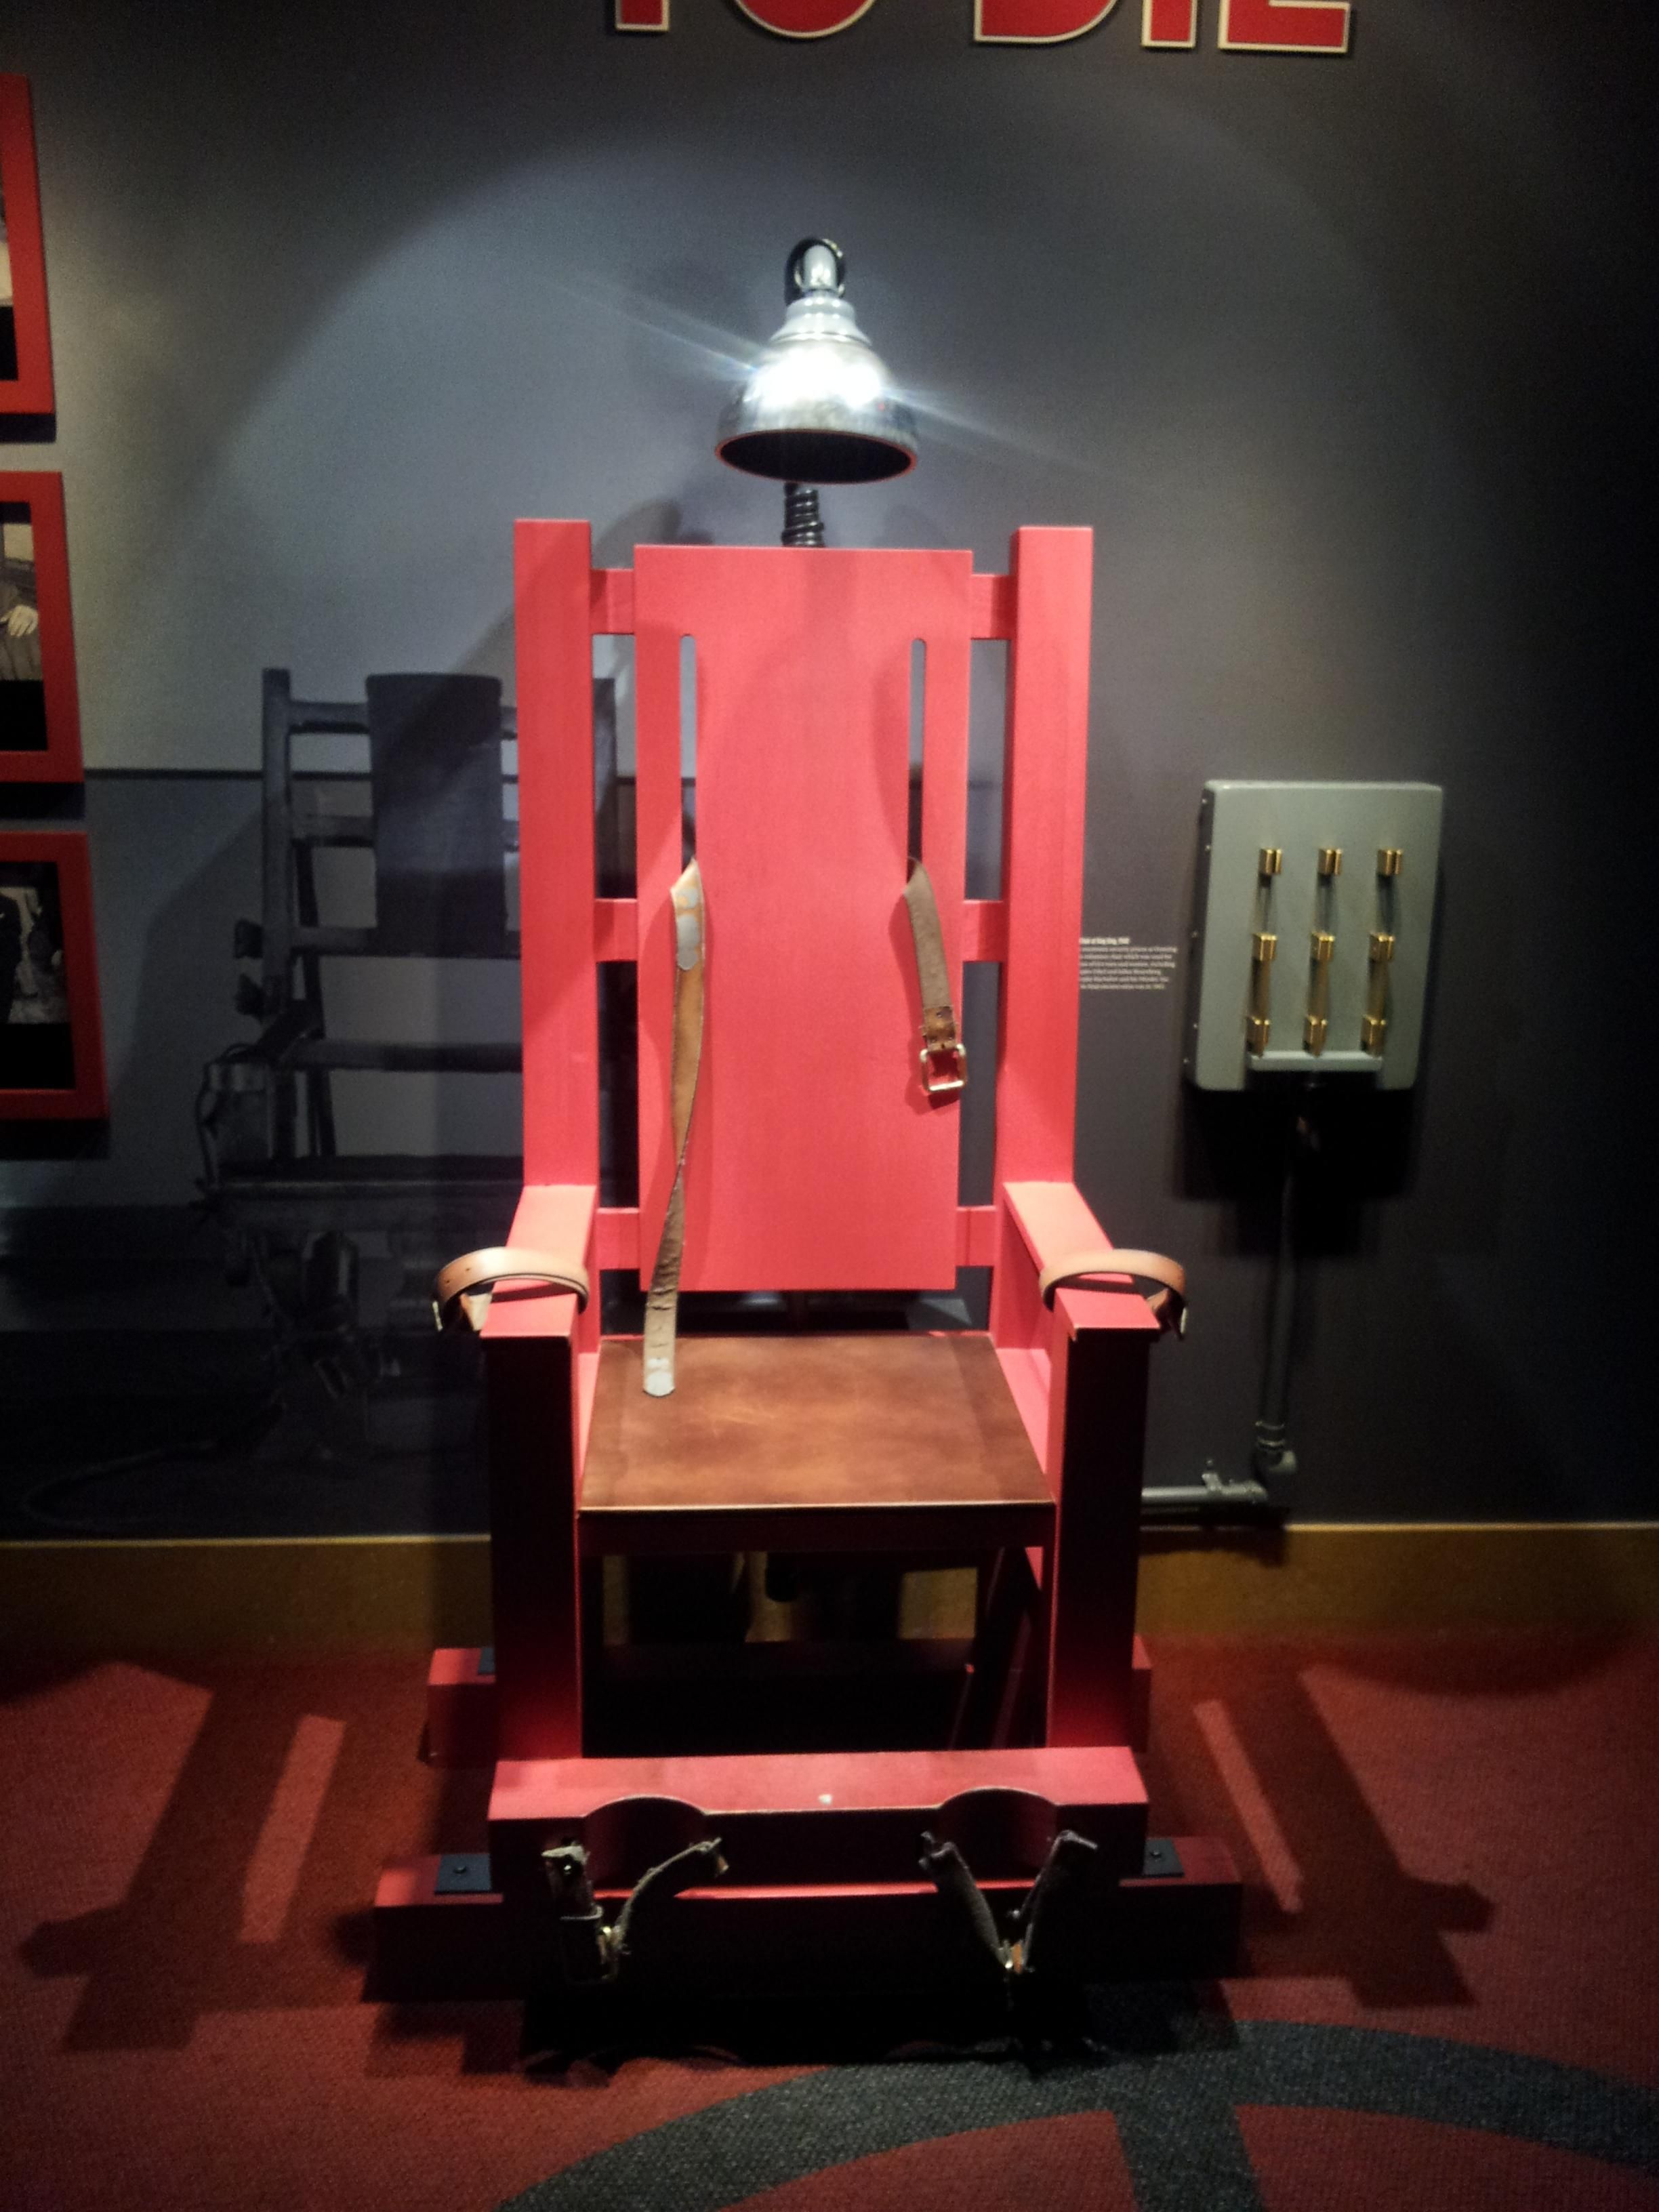 Electric chair chamber - Electric Chair From Sing Sing Prison That Killed Many Mobsters Maureen Mills Mills Mills Mills